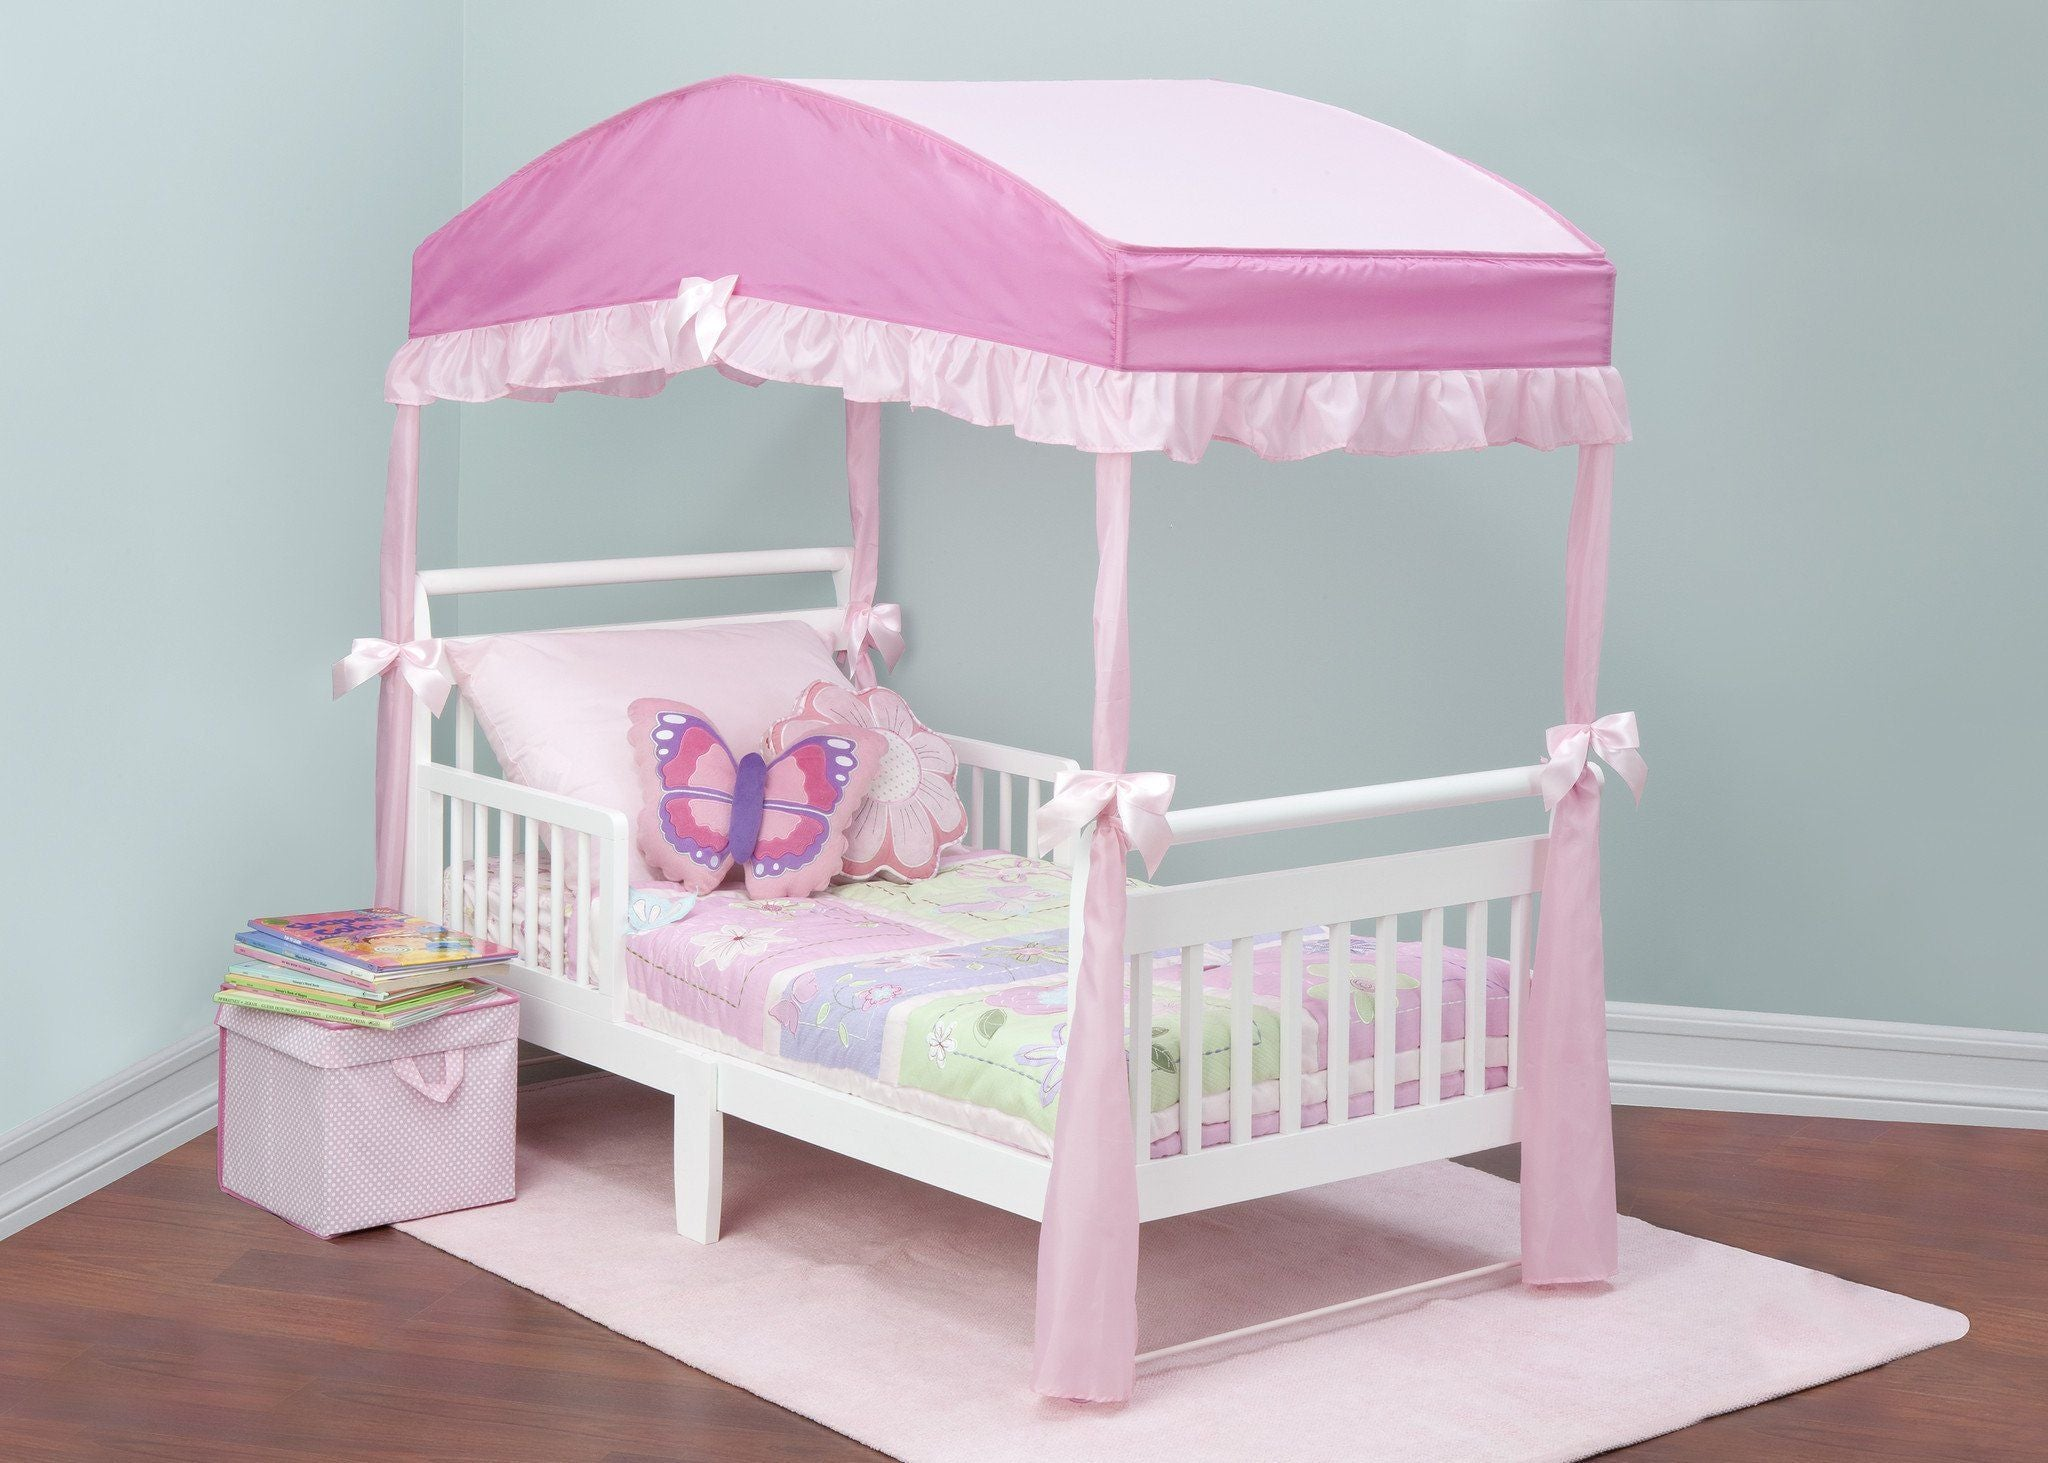 Delta Children Toddler Bed Canopy Pink (660) Style 2 Right Side View with Props b1b